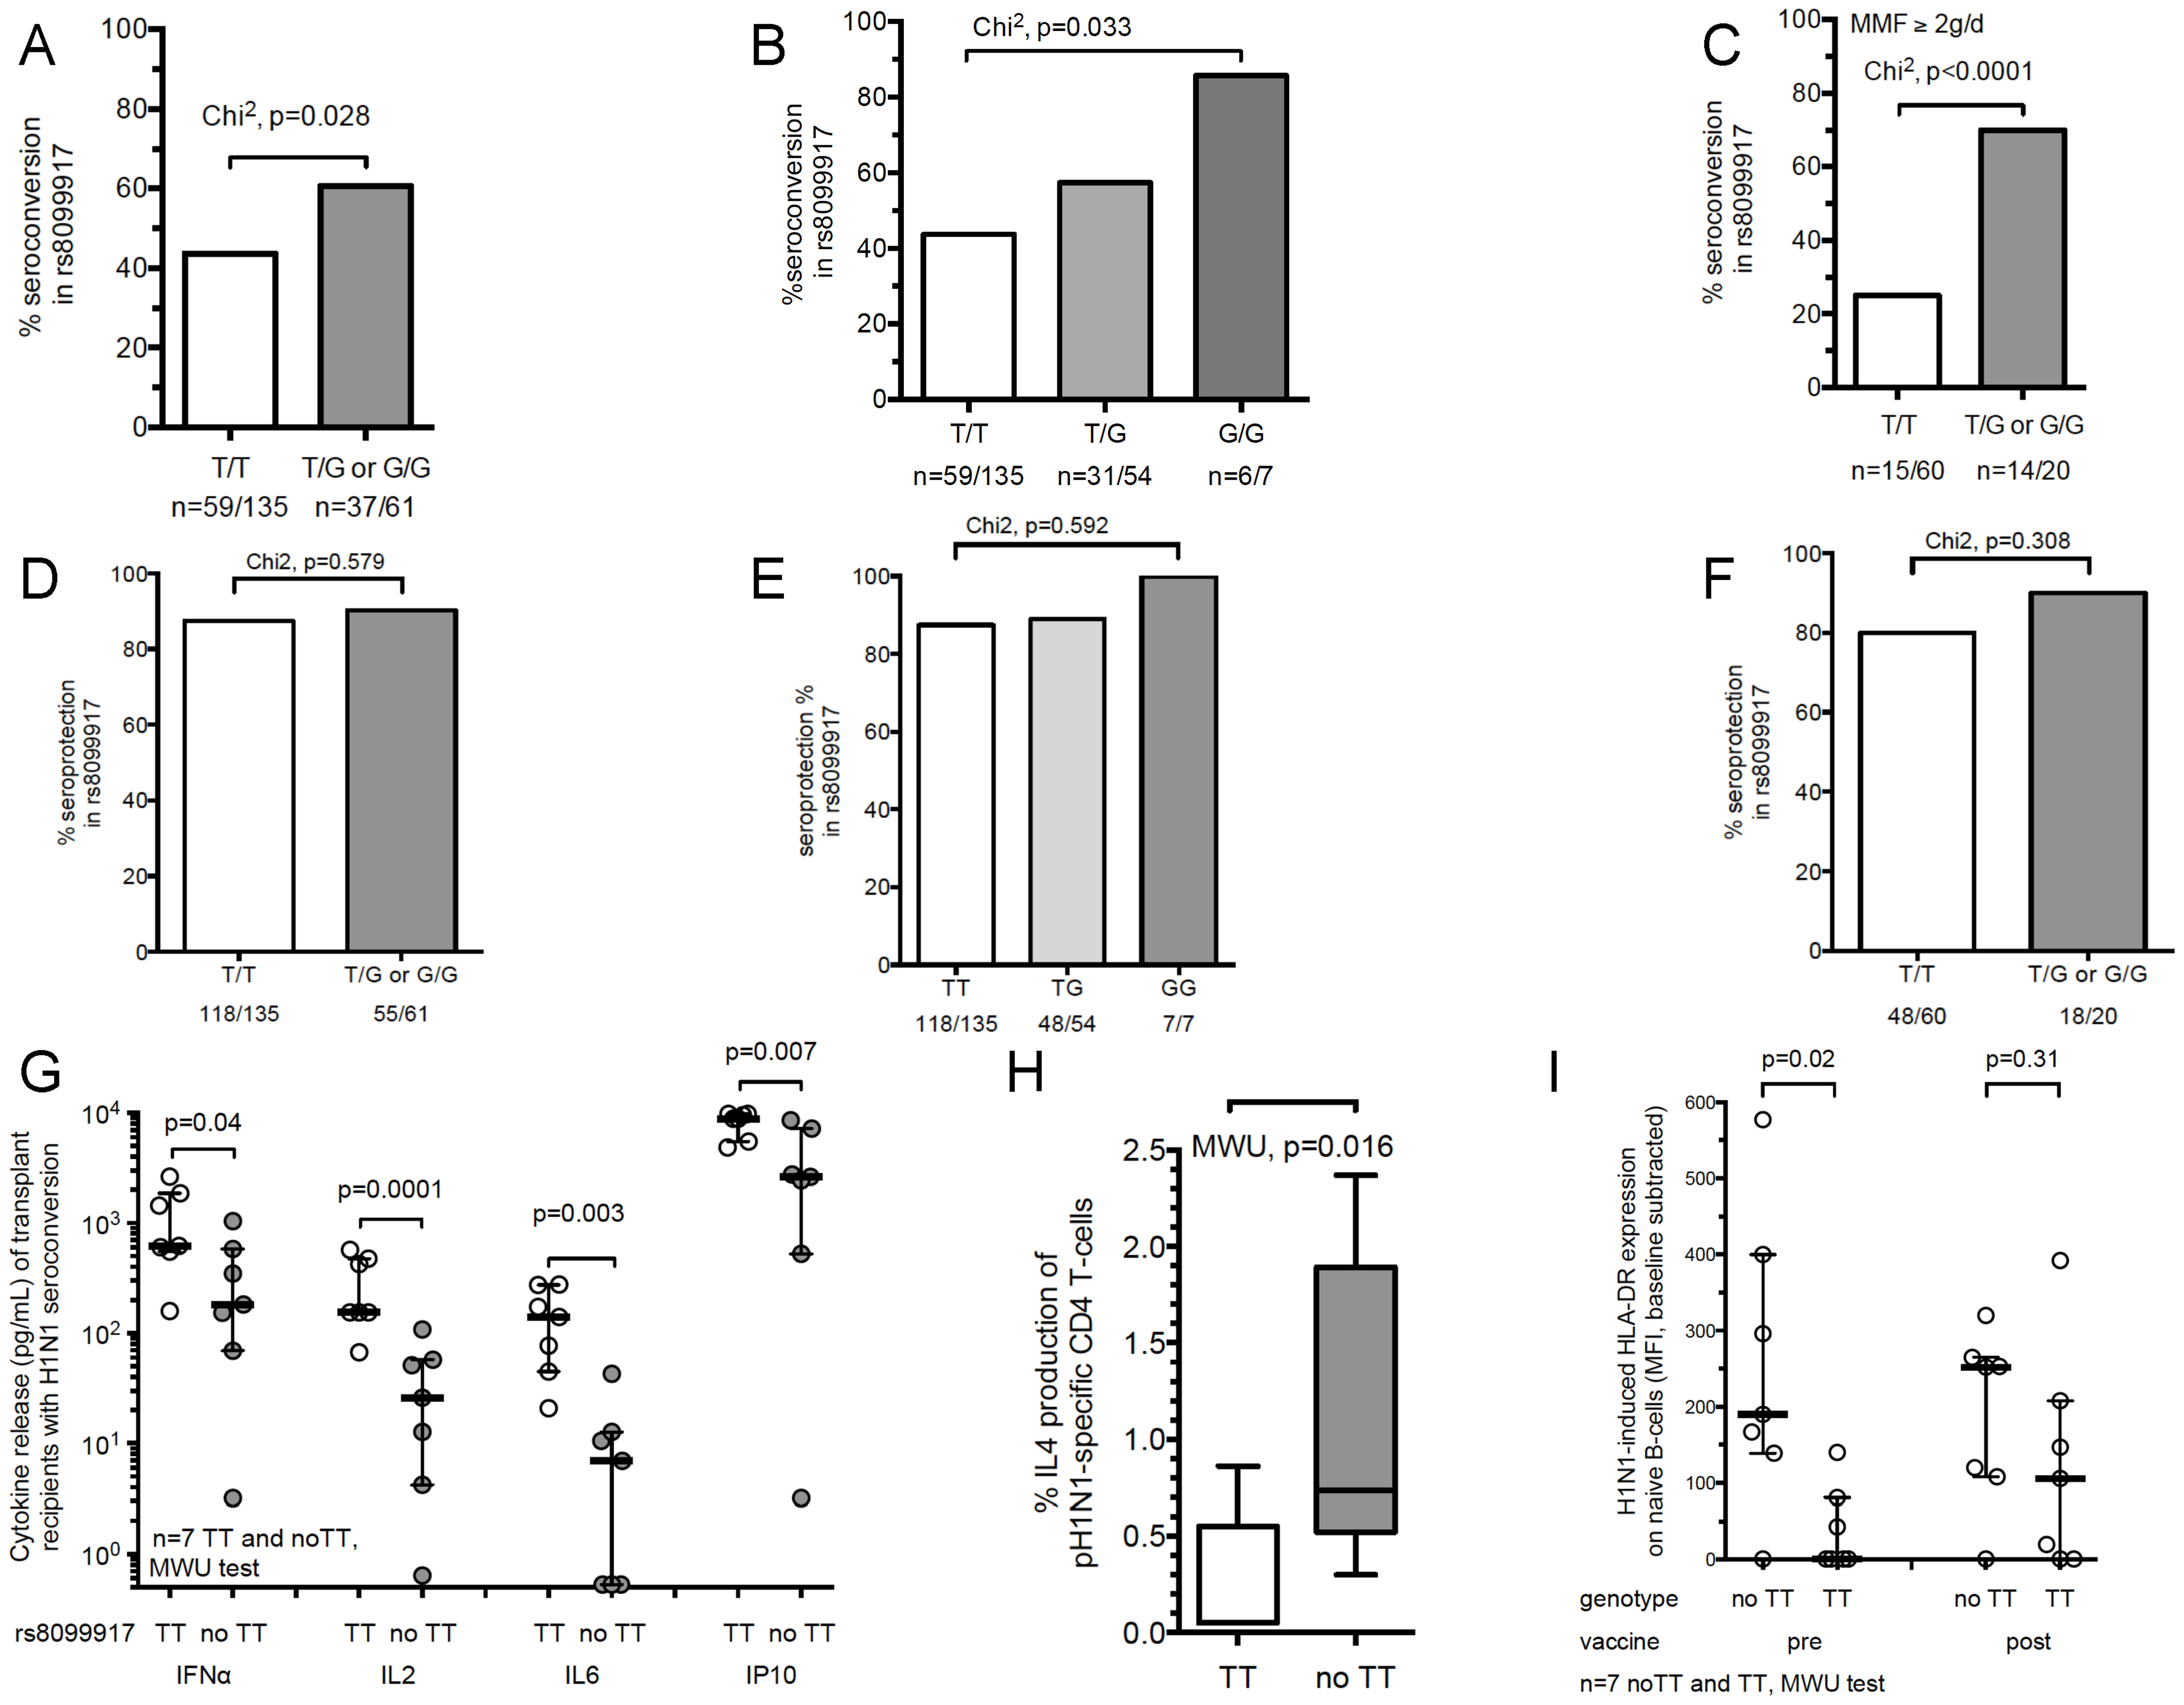 IL-28B genotype significantly impacts Influenza H1N1-stimulated immune responses in transplant recipients.